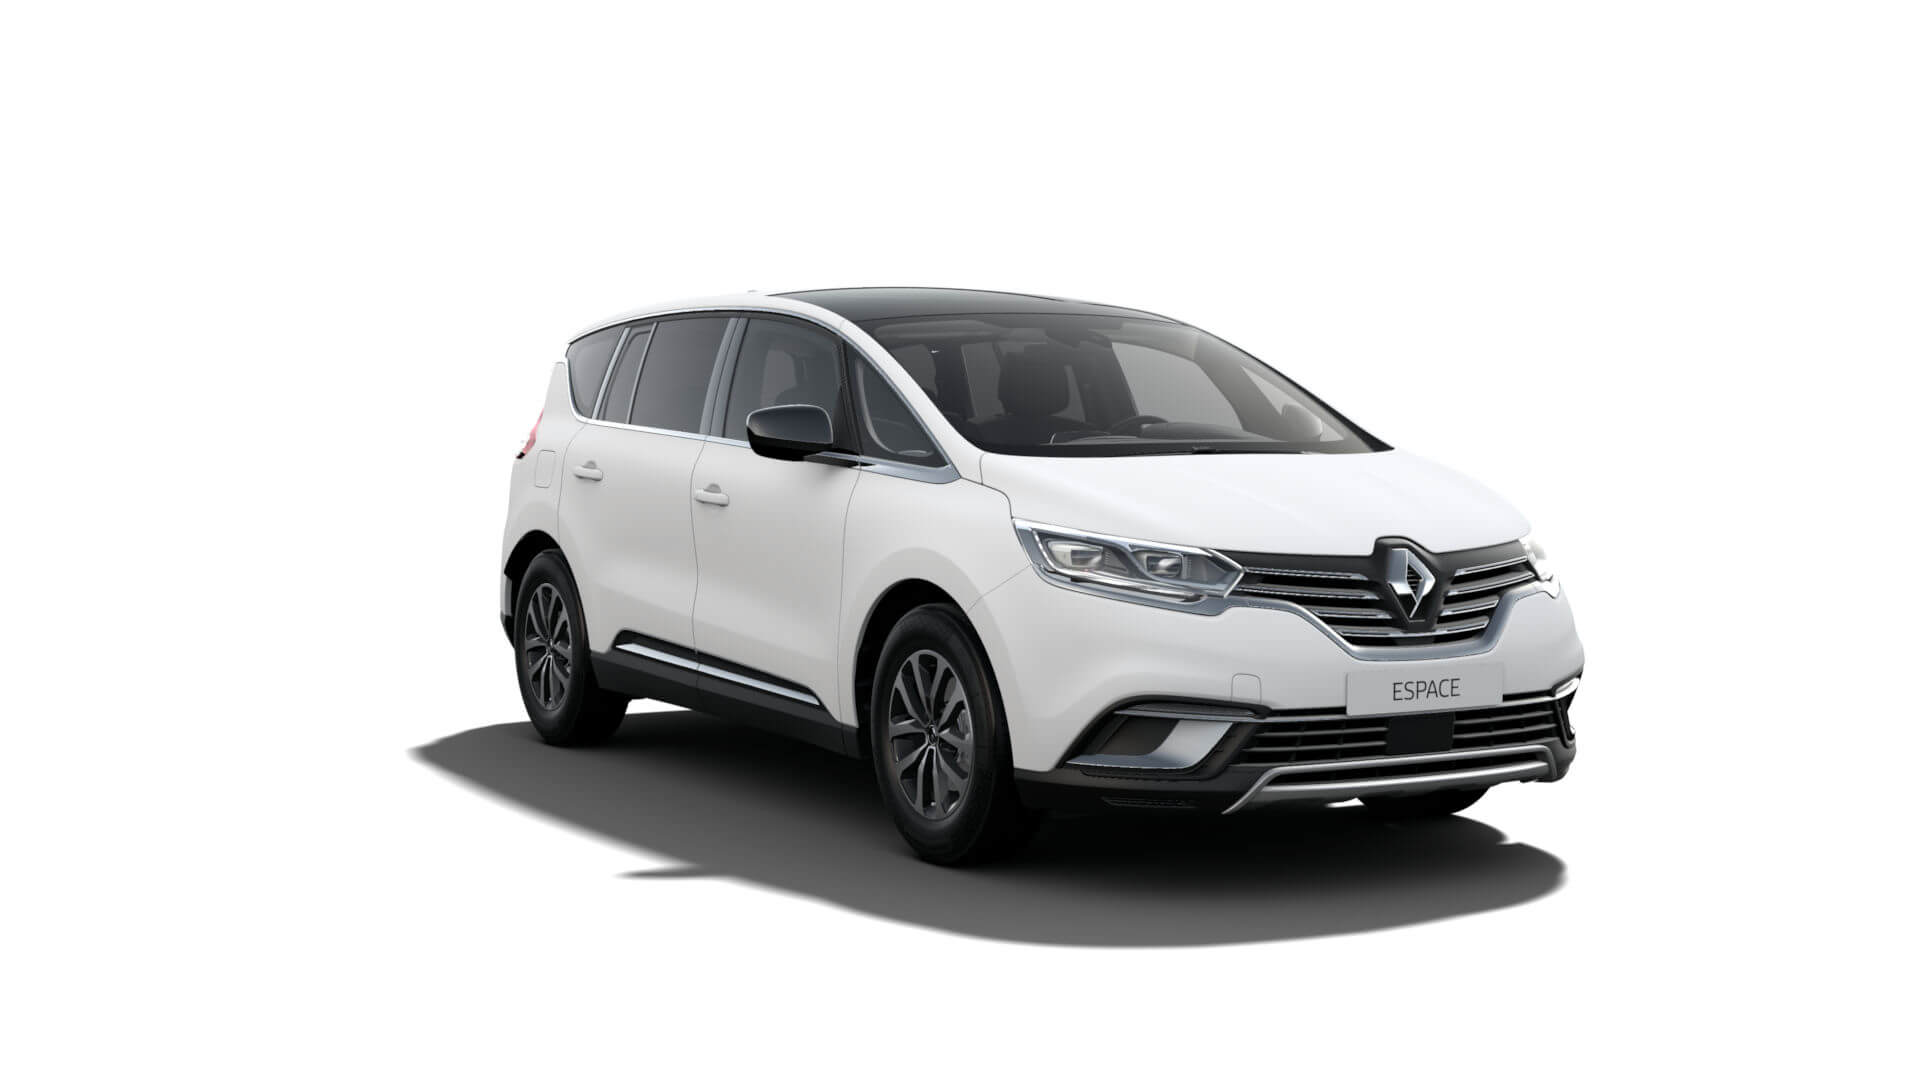 Automodell weiß - Renault Espace - Renault Ahrens Hannover